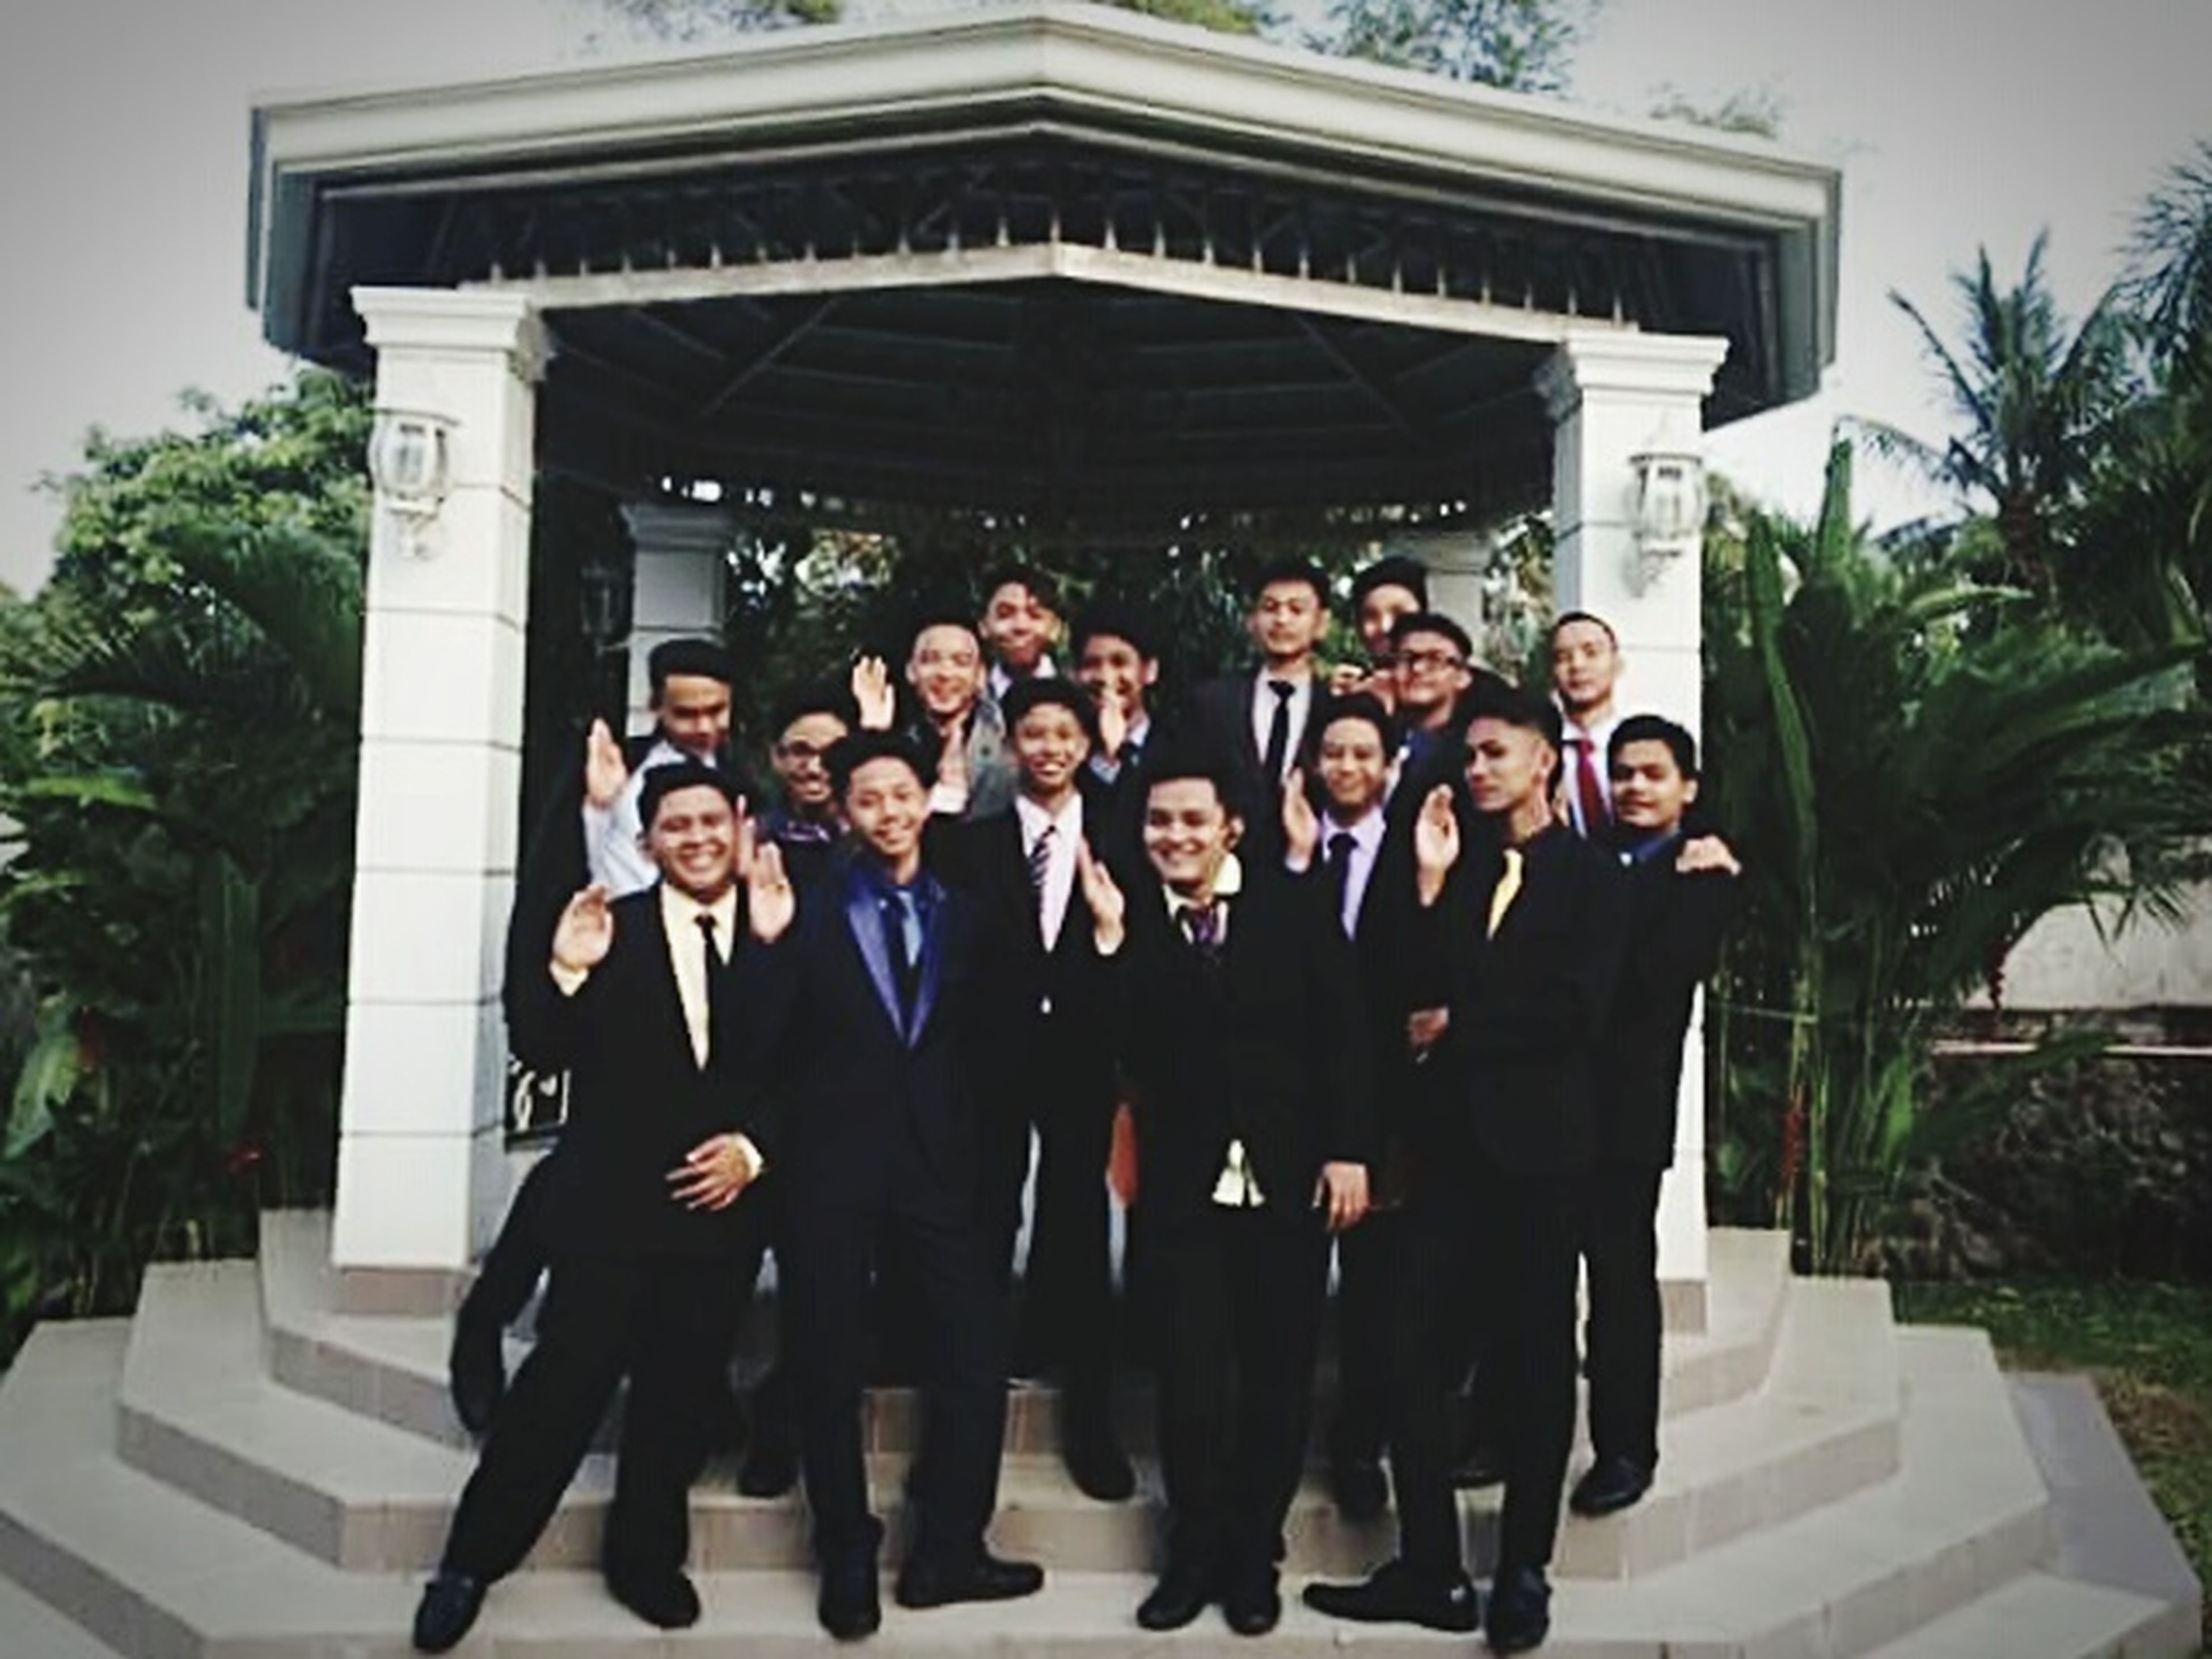 Well-dressed Large Group Of People Celebration People Outdoors Front View Looking At Camera Full Length Mature Men Young Adult Promenade♡ Boys Standing Pabebewavepamore Goodlooking Gentlemen Requested Portrait .I will this persons who protect me! Symbol Of Friendship Friendship Smiling